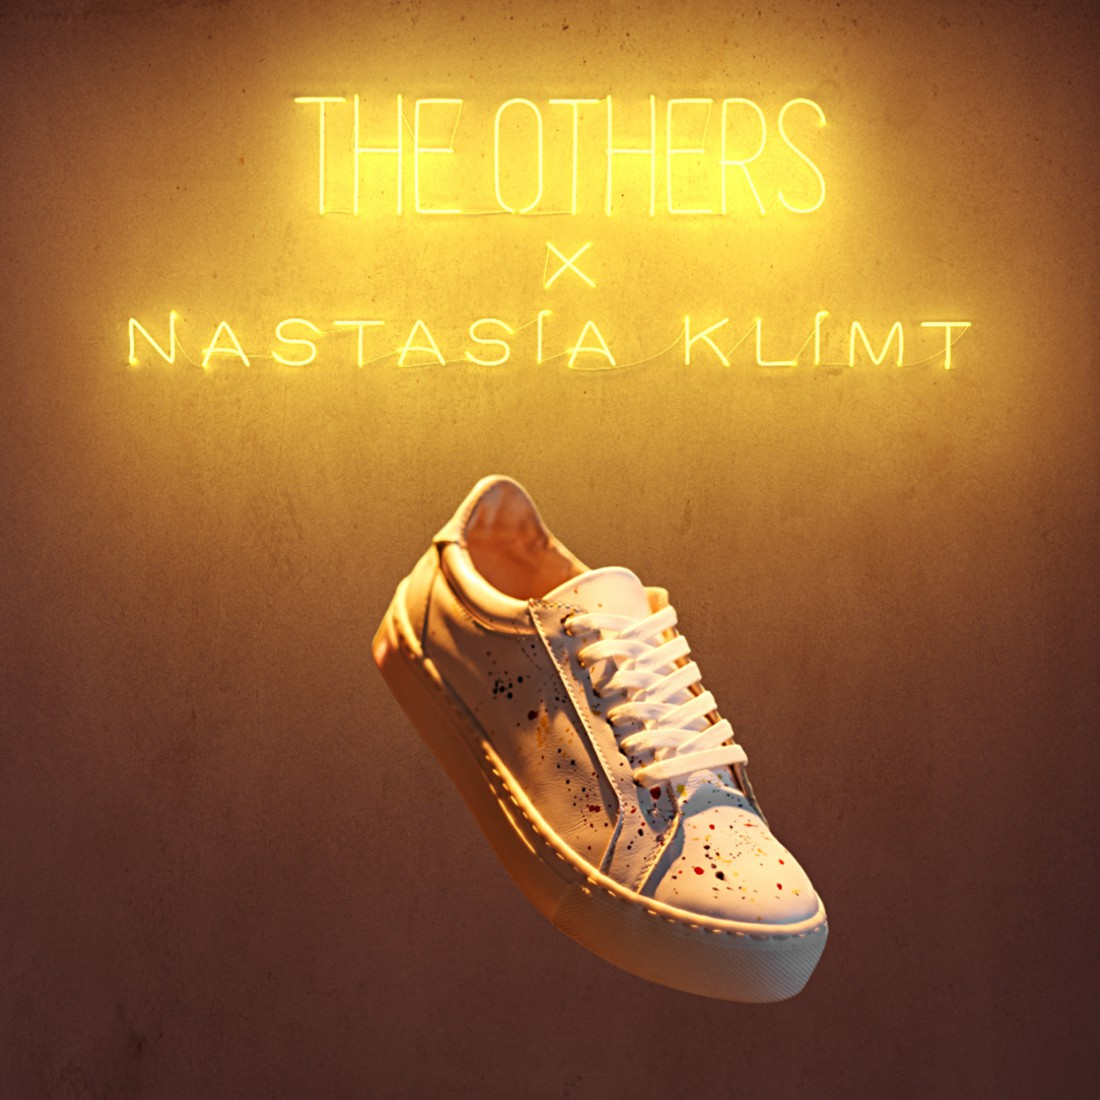 NASTASIA KLIMT x THE OTHERS